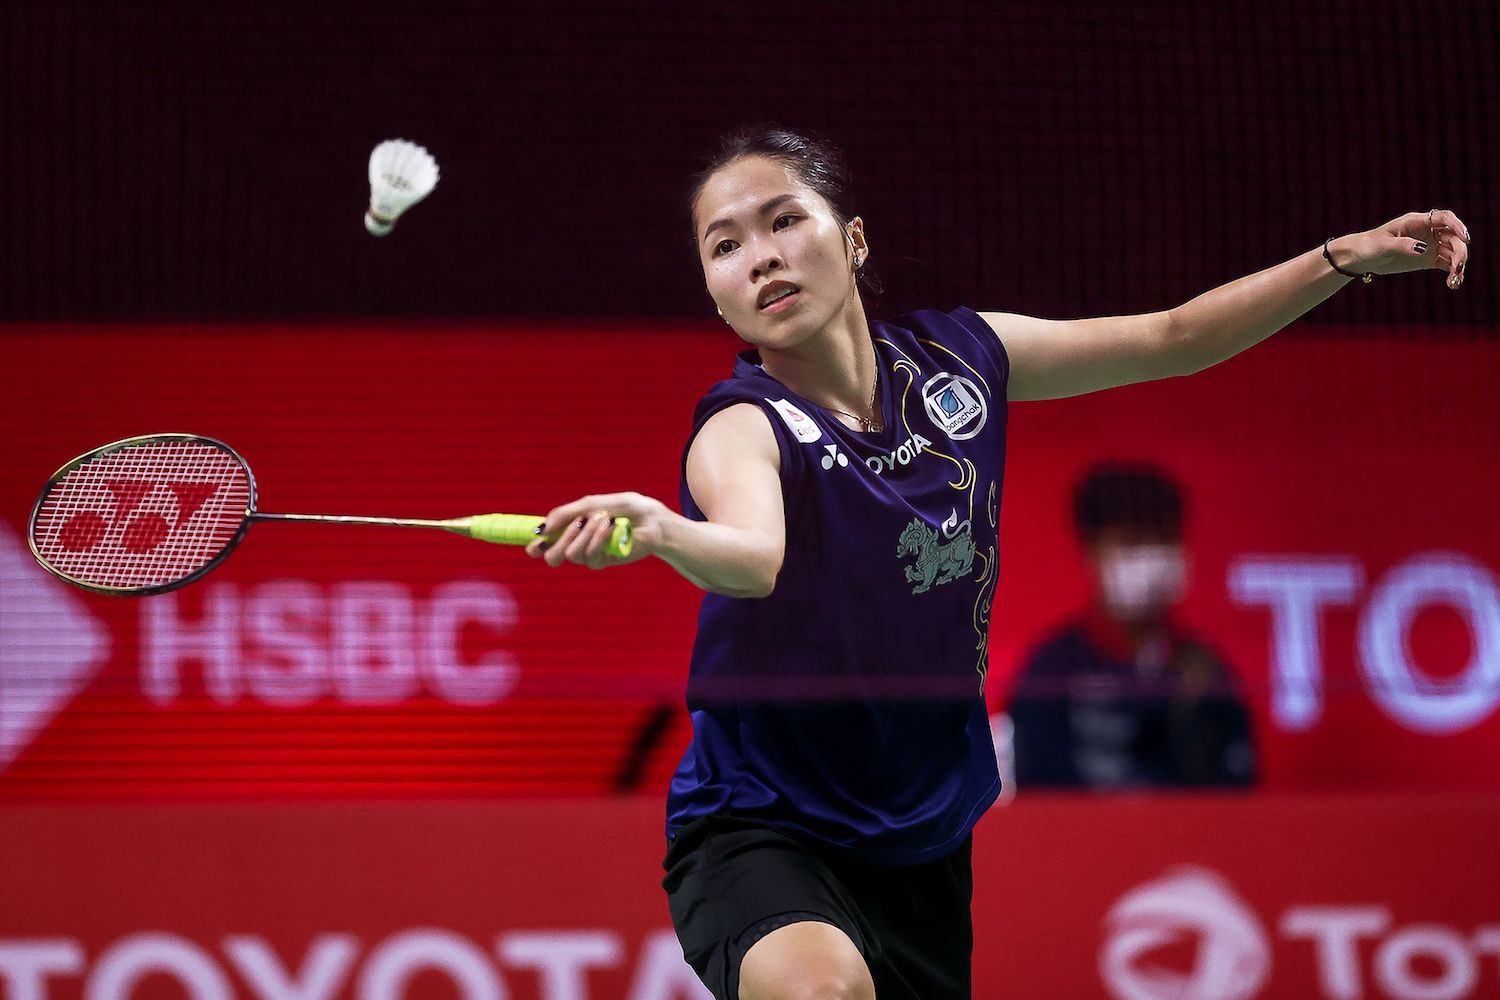 Ratchanok reaches badminton semi-finals